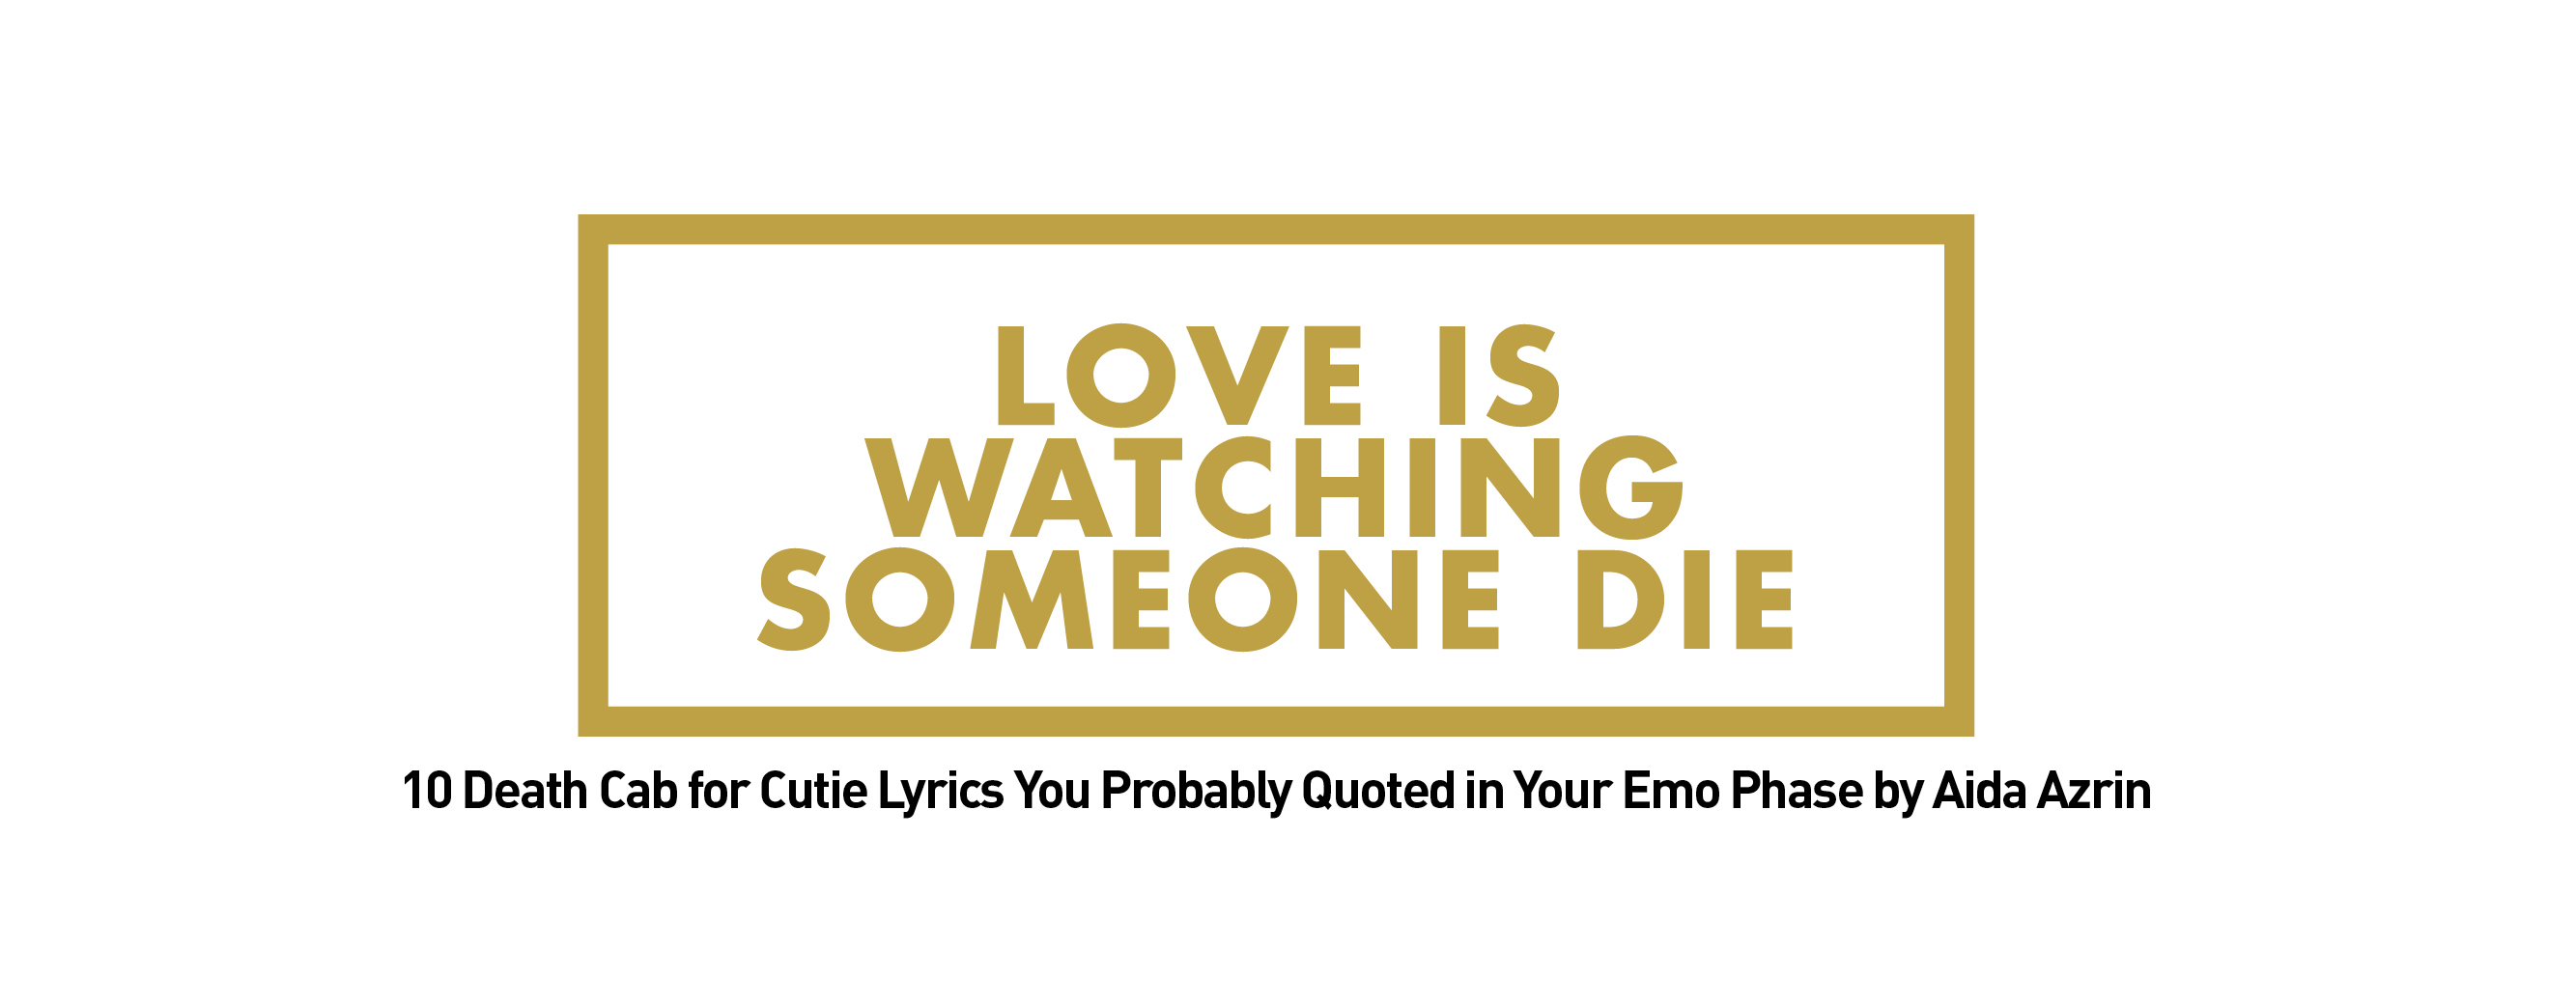 love is watching someone die